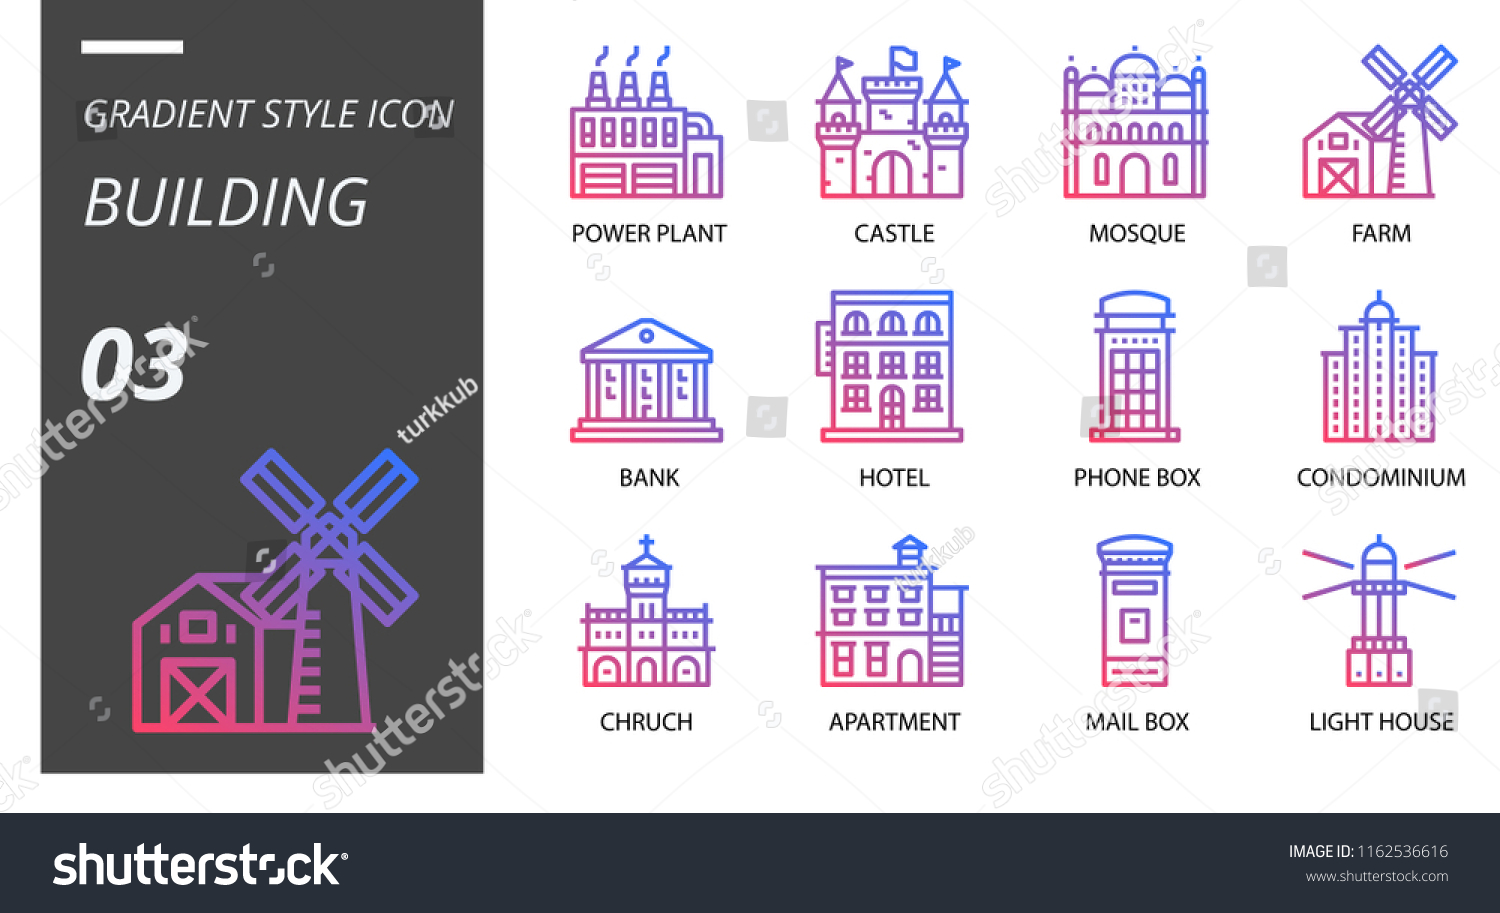 hight resolution of gradient style icon pack for building power plant castle mosque farm